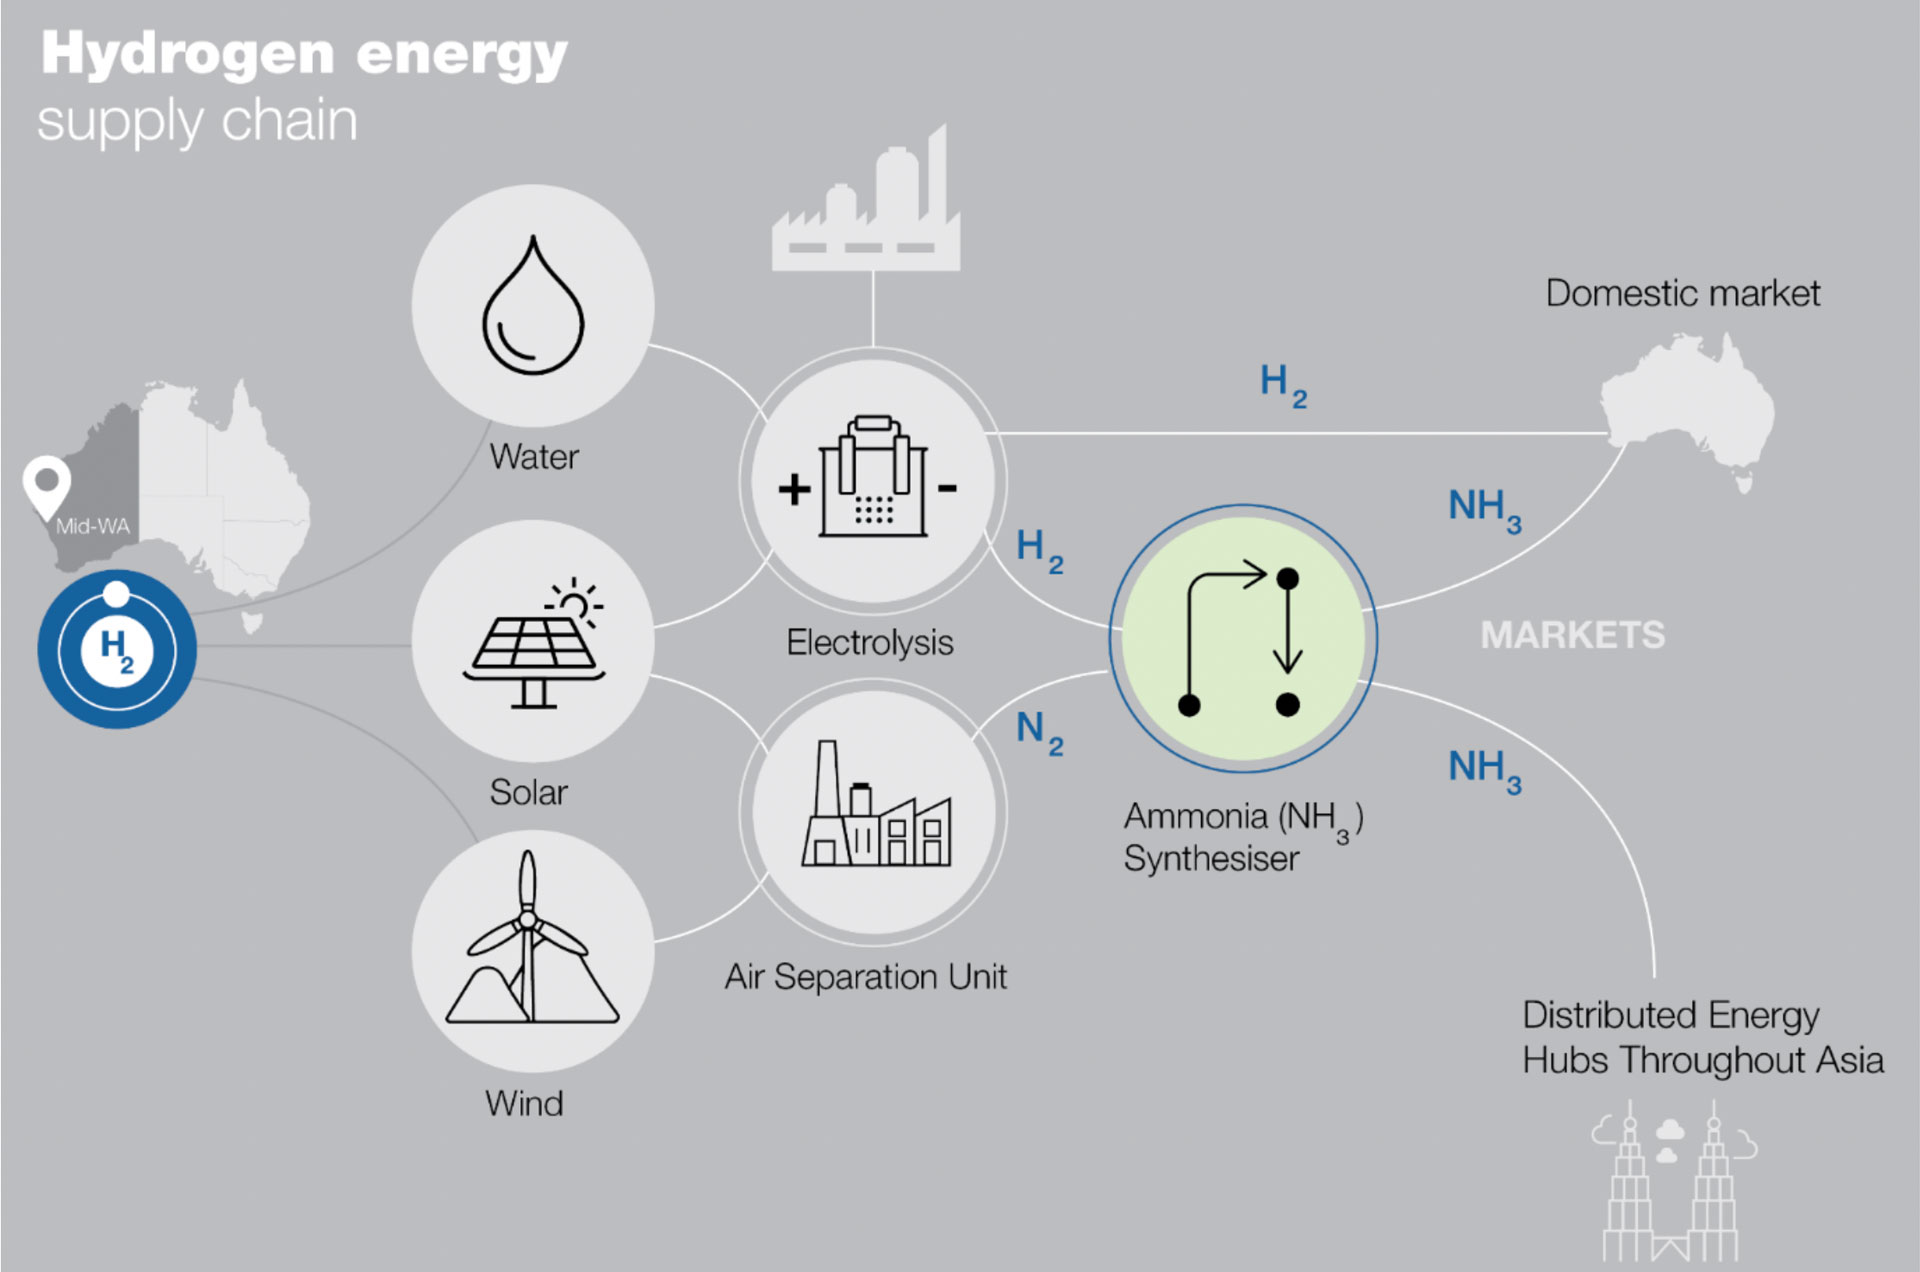 Hydrogen energy supply chain